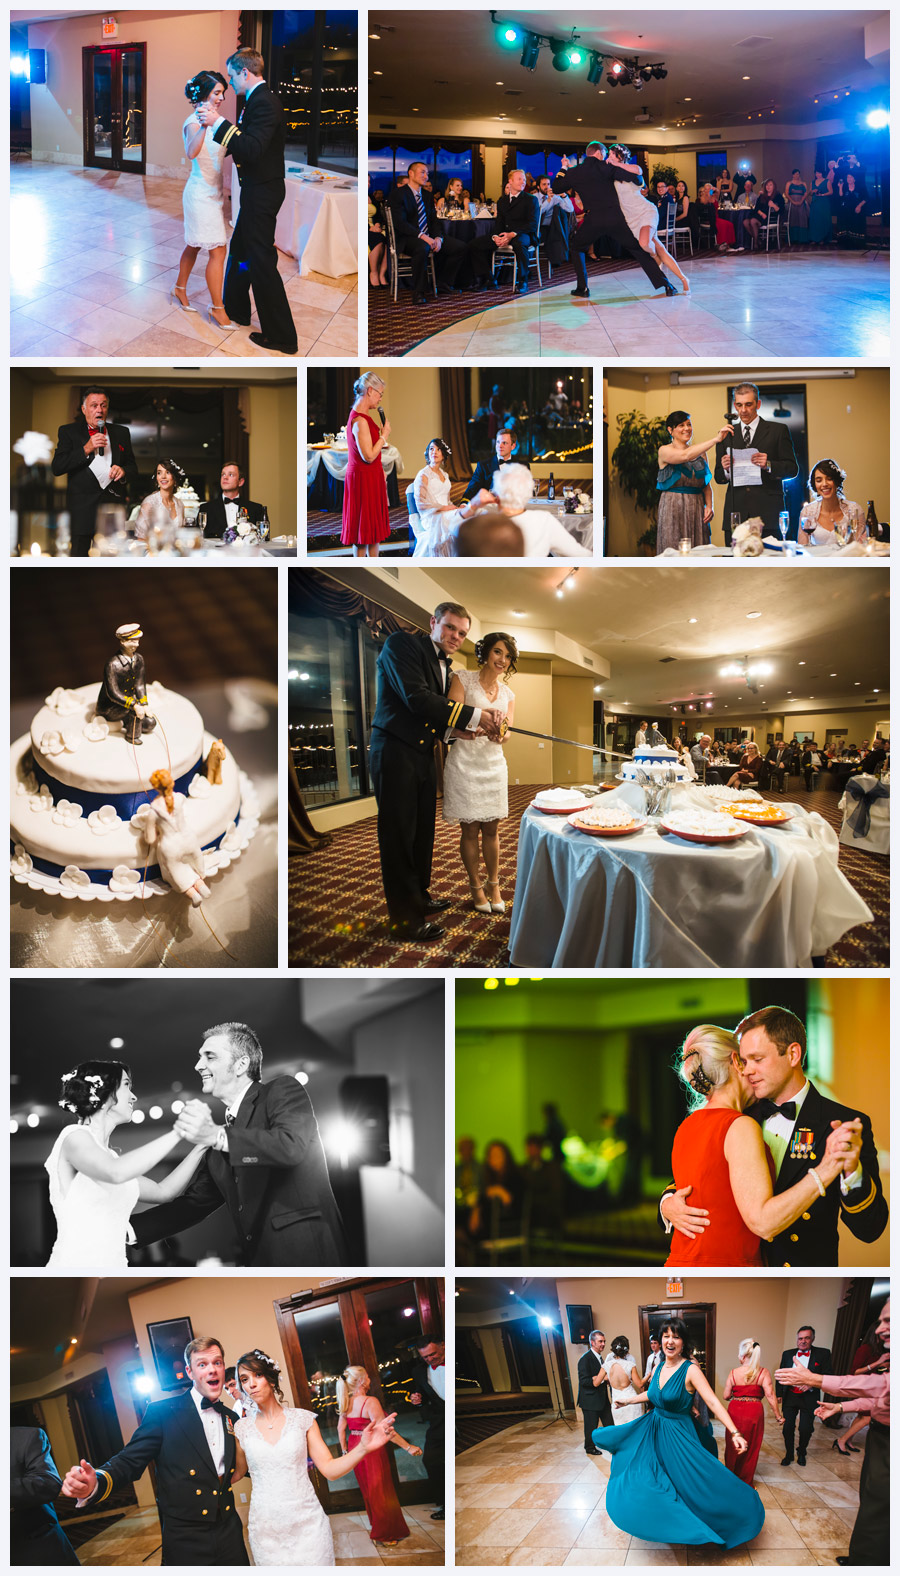 Wedding Photos at Saguaro Community Church Tucson Arizona